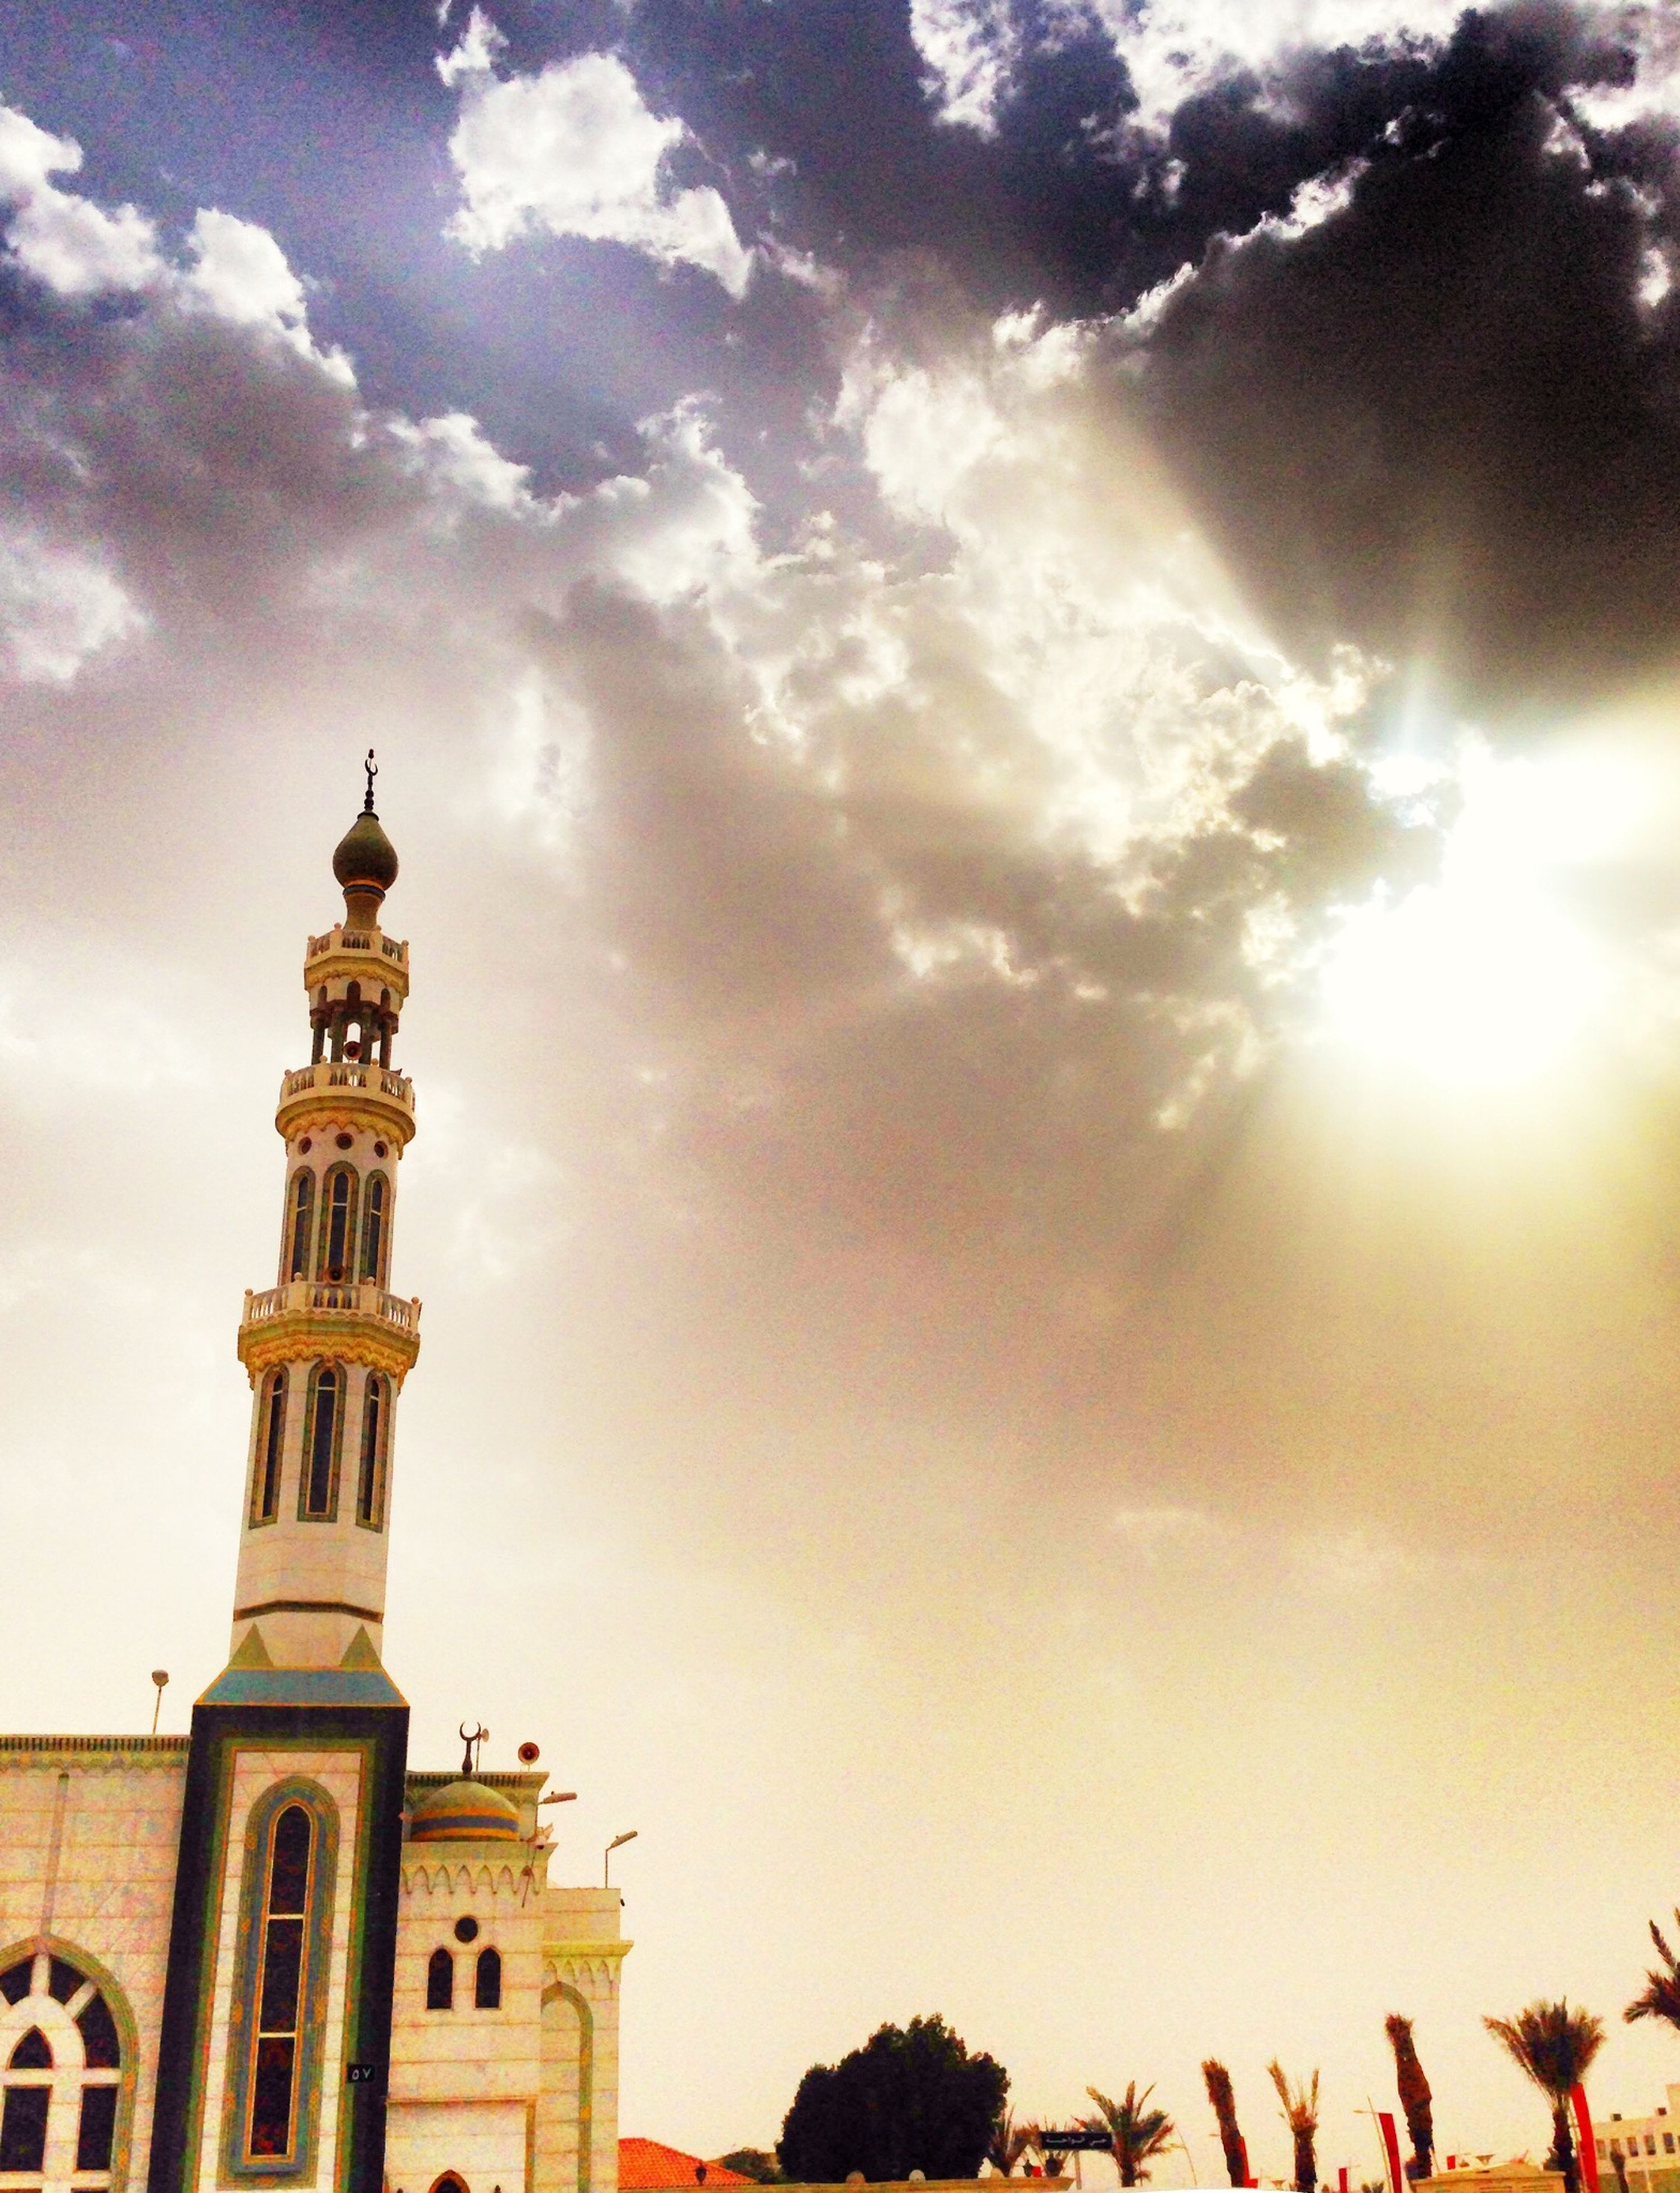 building exterior, architecture, low angle view, built structure, sky, cloud - sky, cloud, sunlight, religion, outdoors, sunset, street light, city, place of worship, high section, sun, cloudy, travel destinations, day